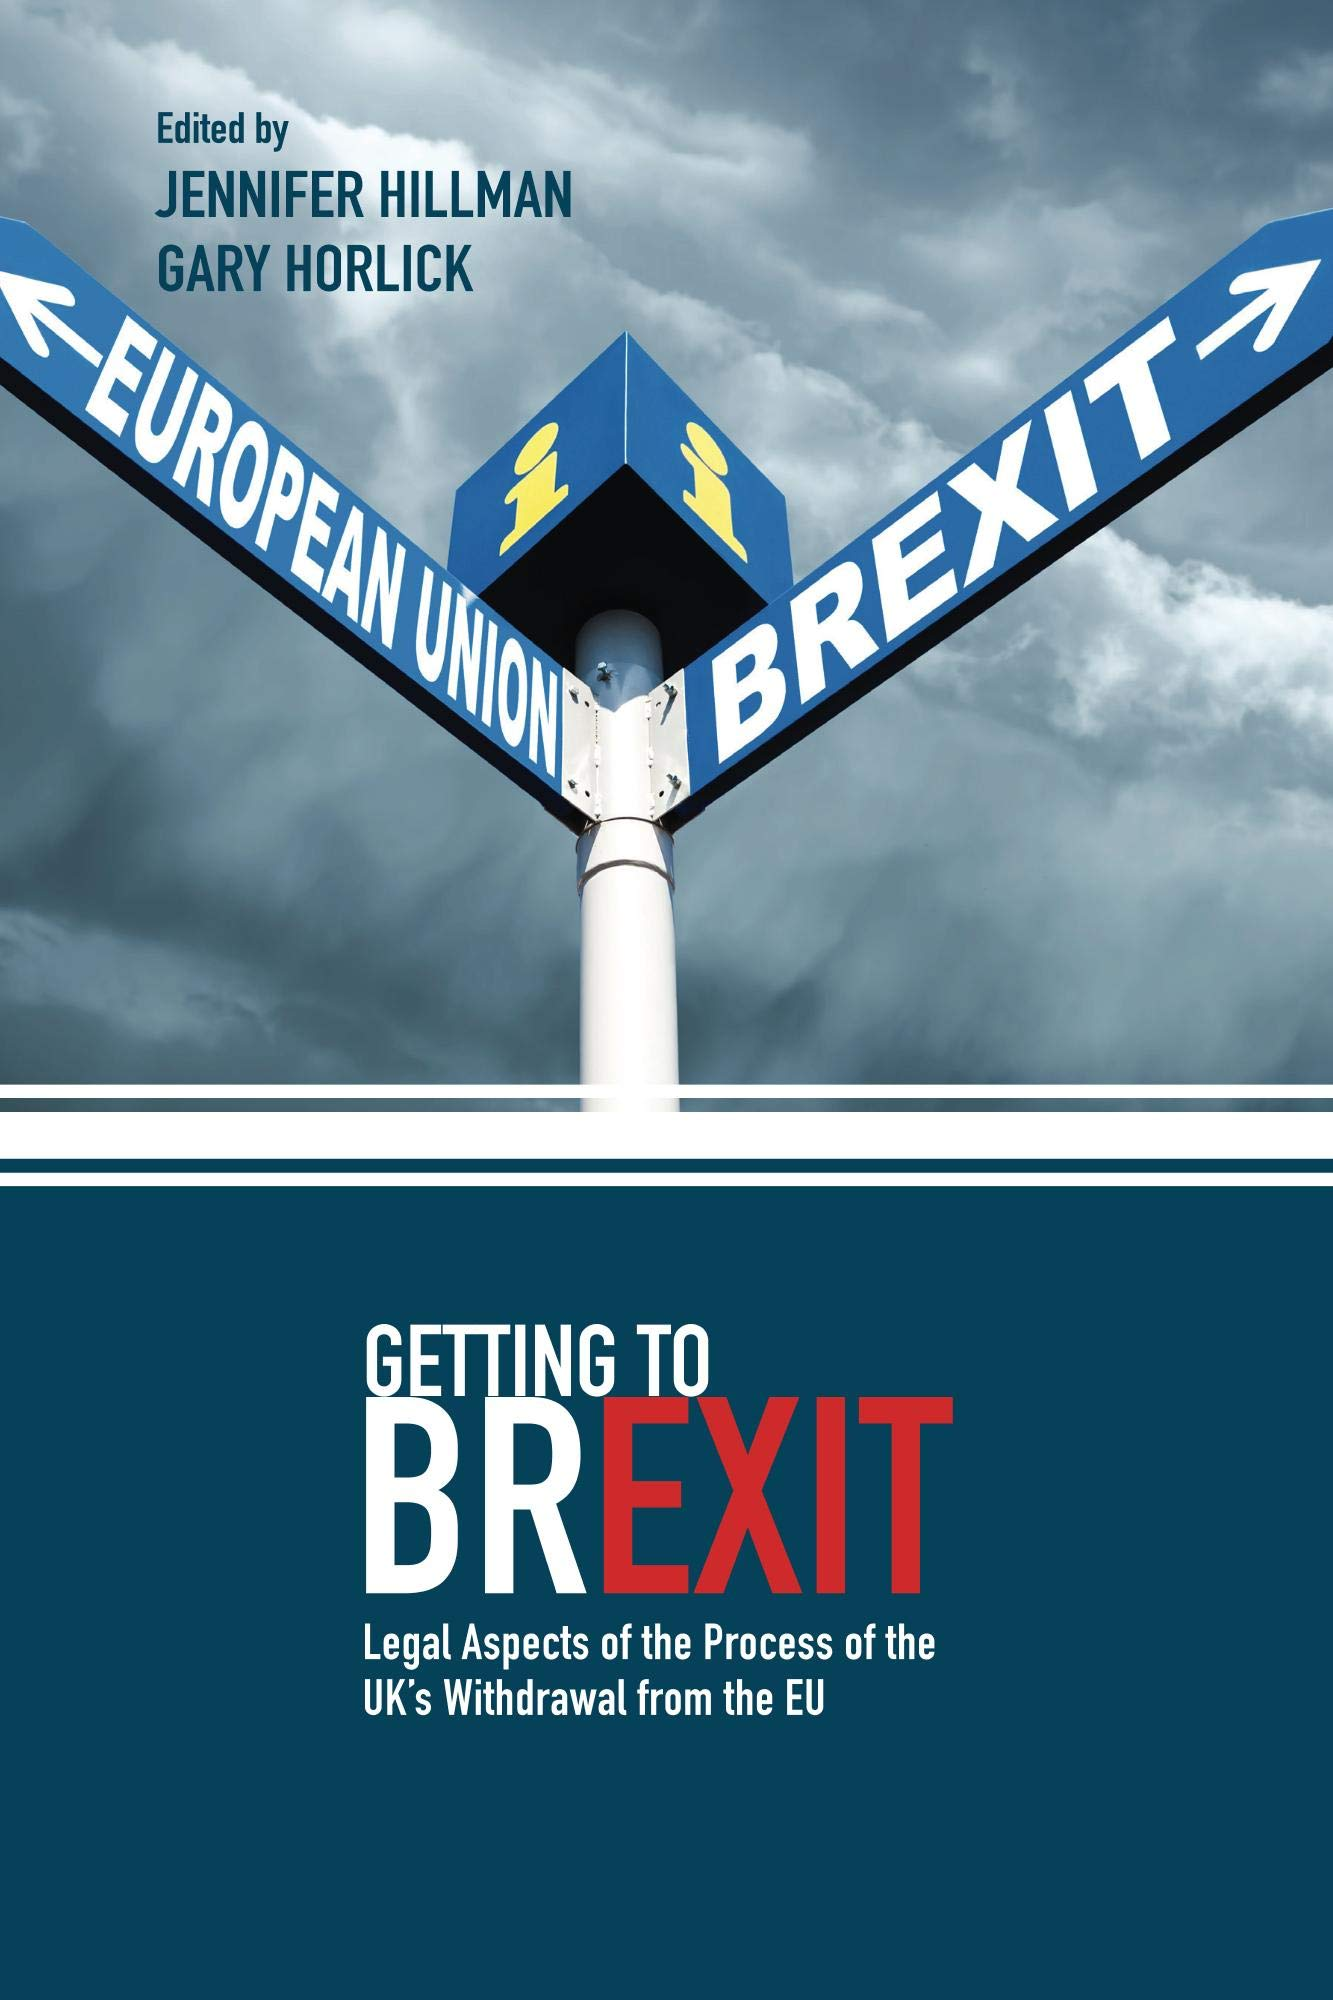 Getting To Brexit  Legal Aspects Of The Process Of The UK's Withdrawal From The EU  English Edition